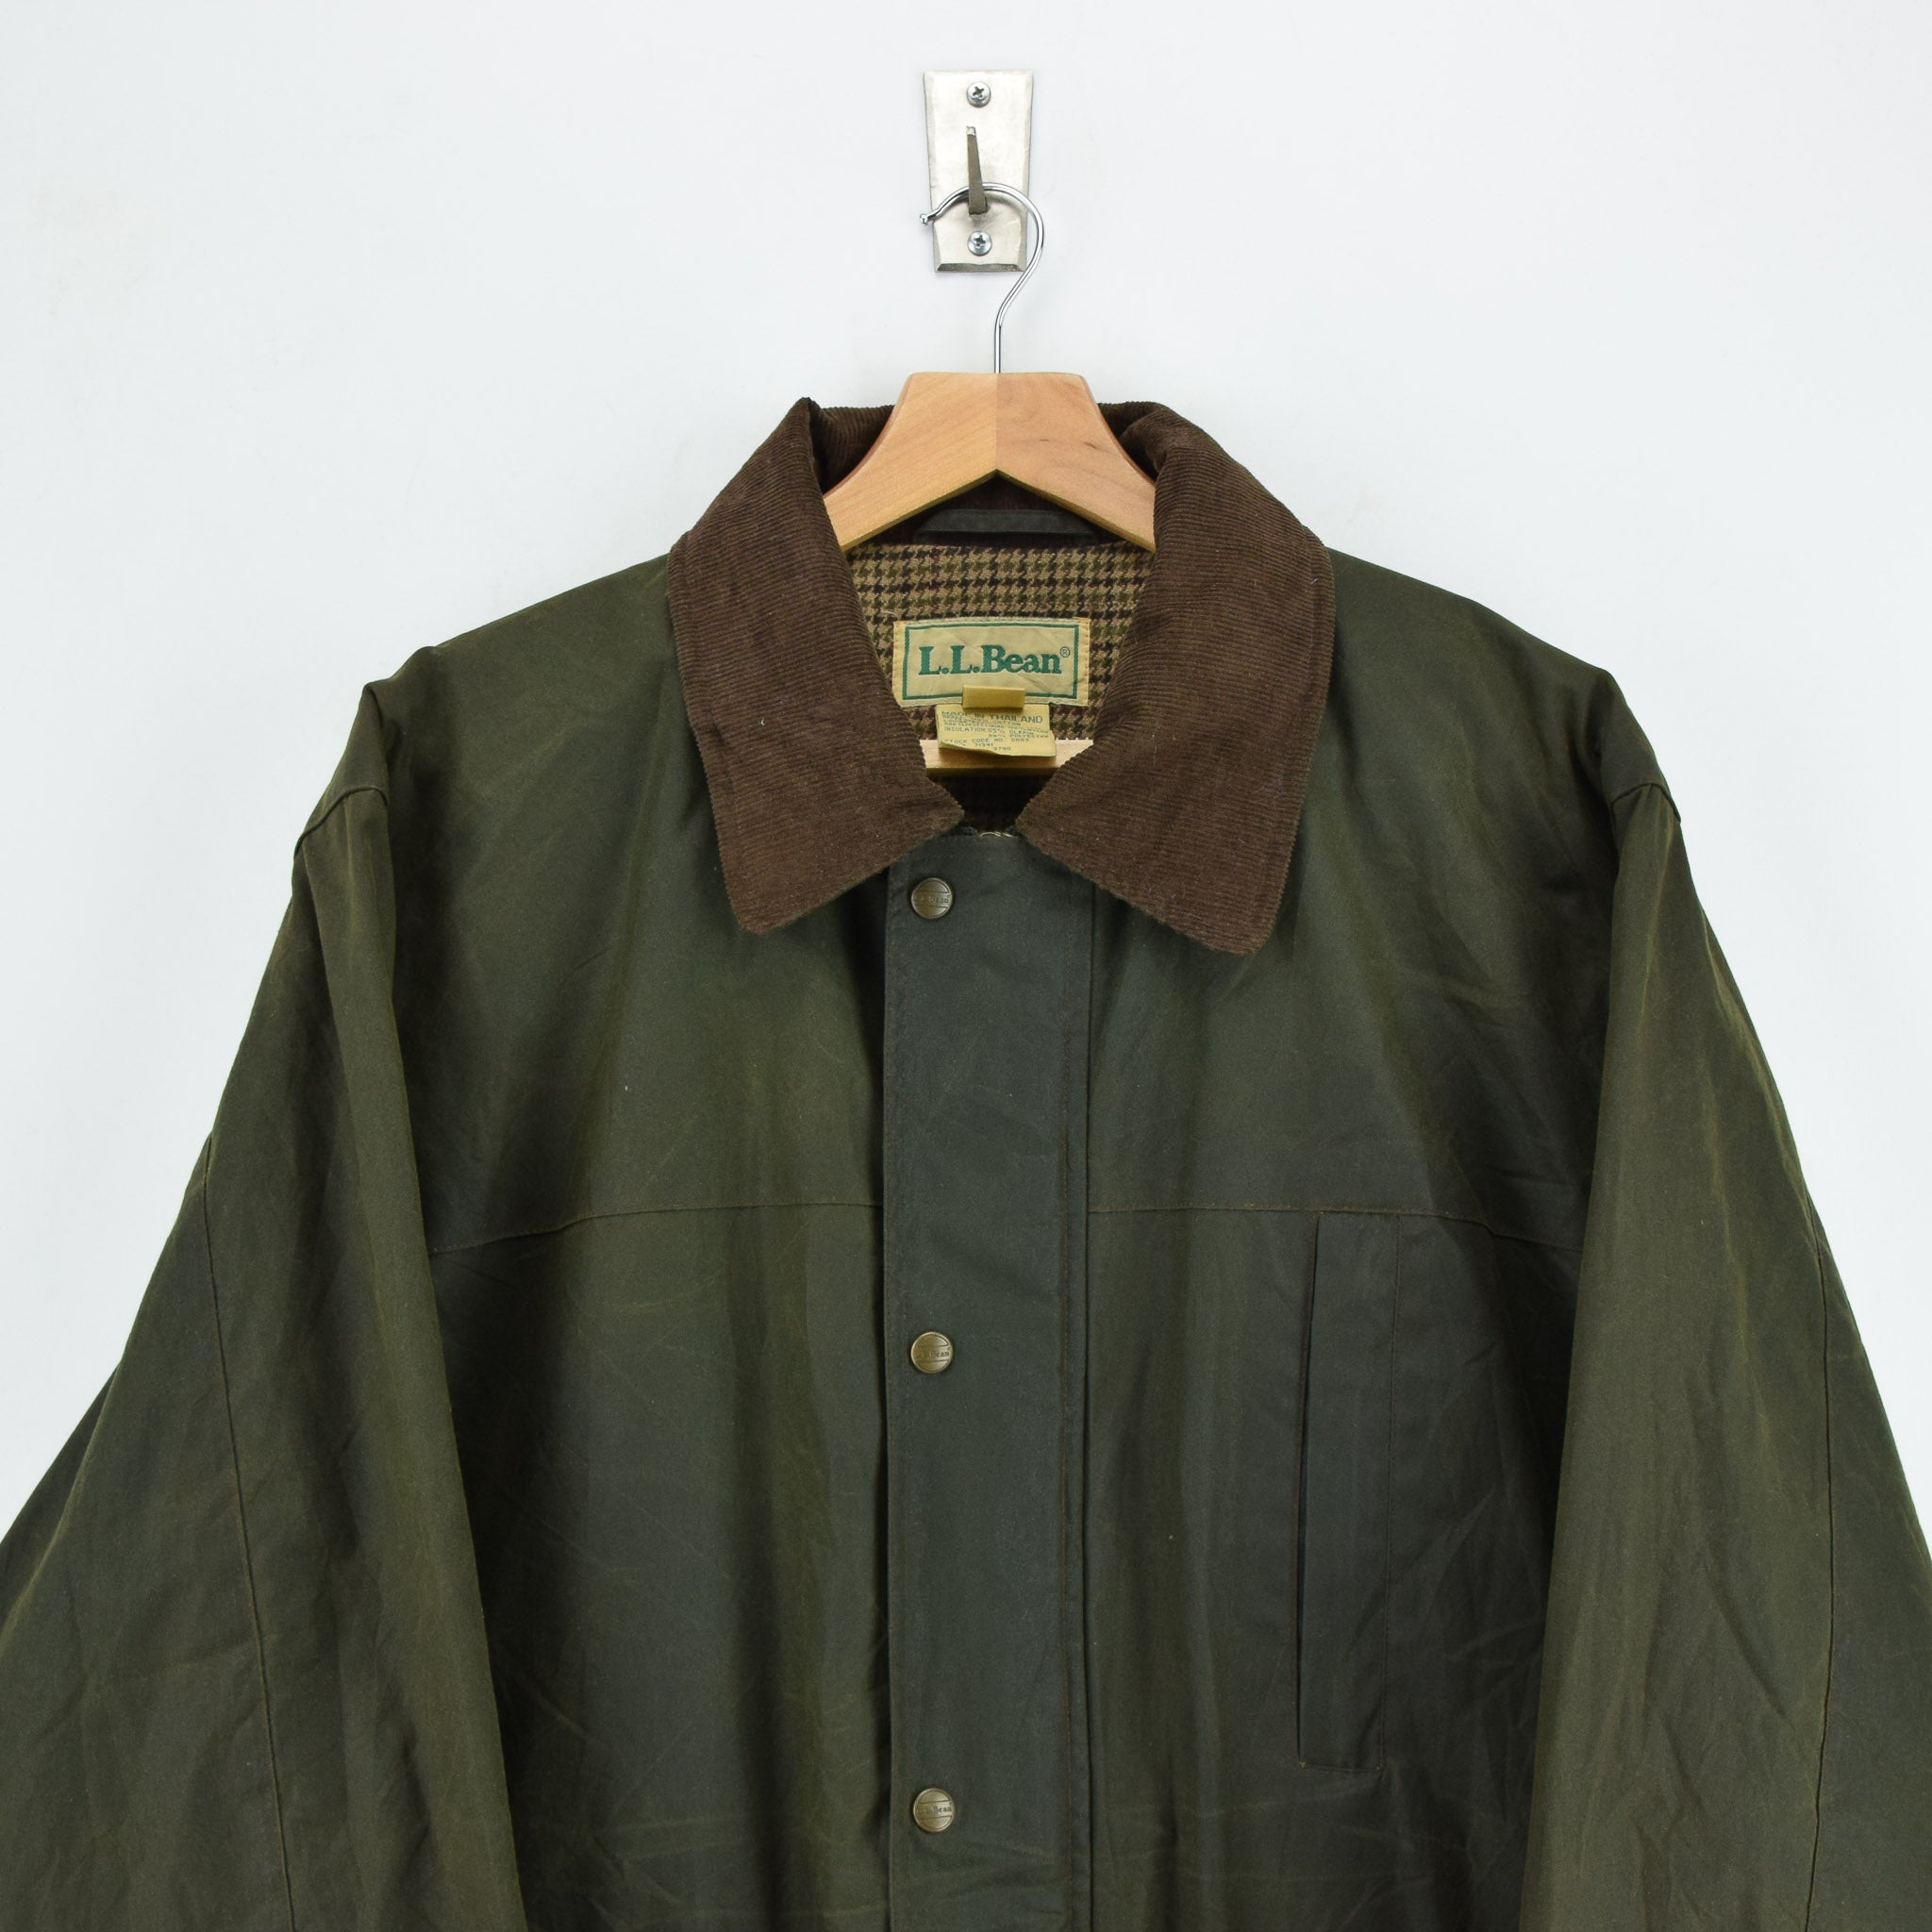 Vintage LL Bean Green Wax Cotton Hunting Shooting Jacket Thinsulate Lined L chest